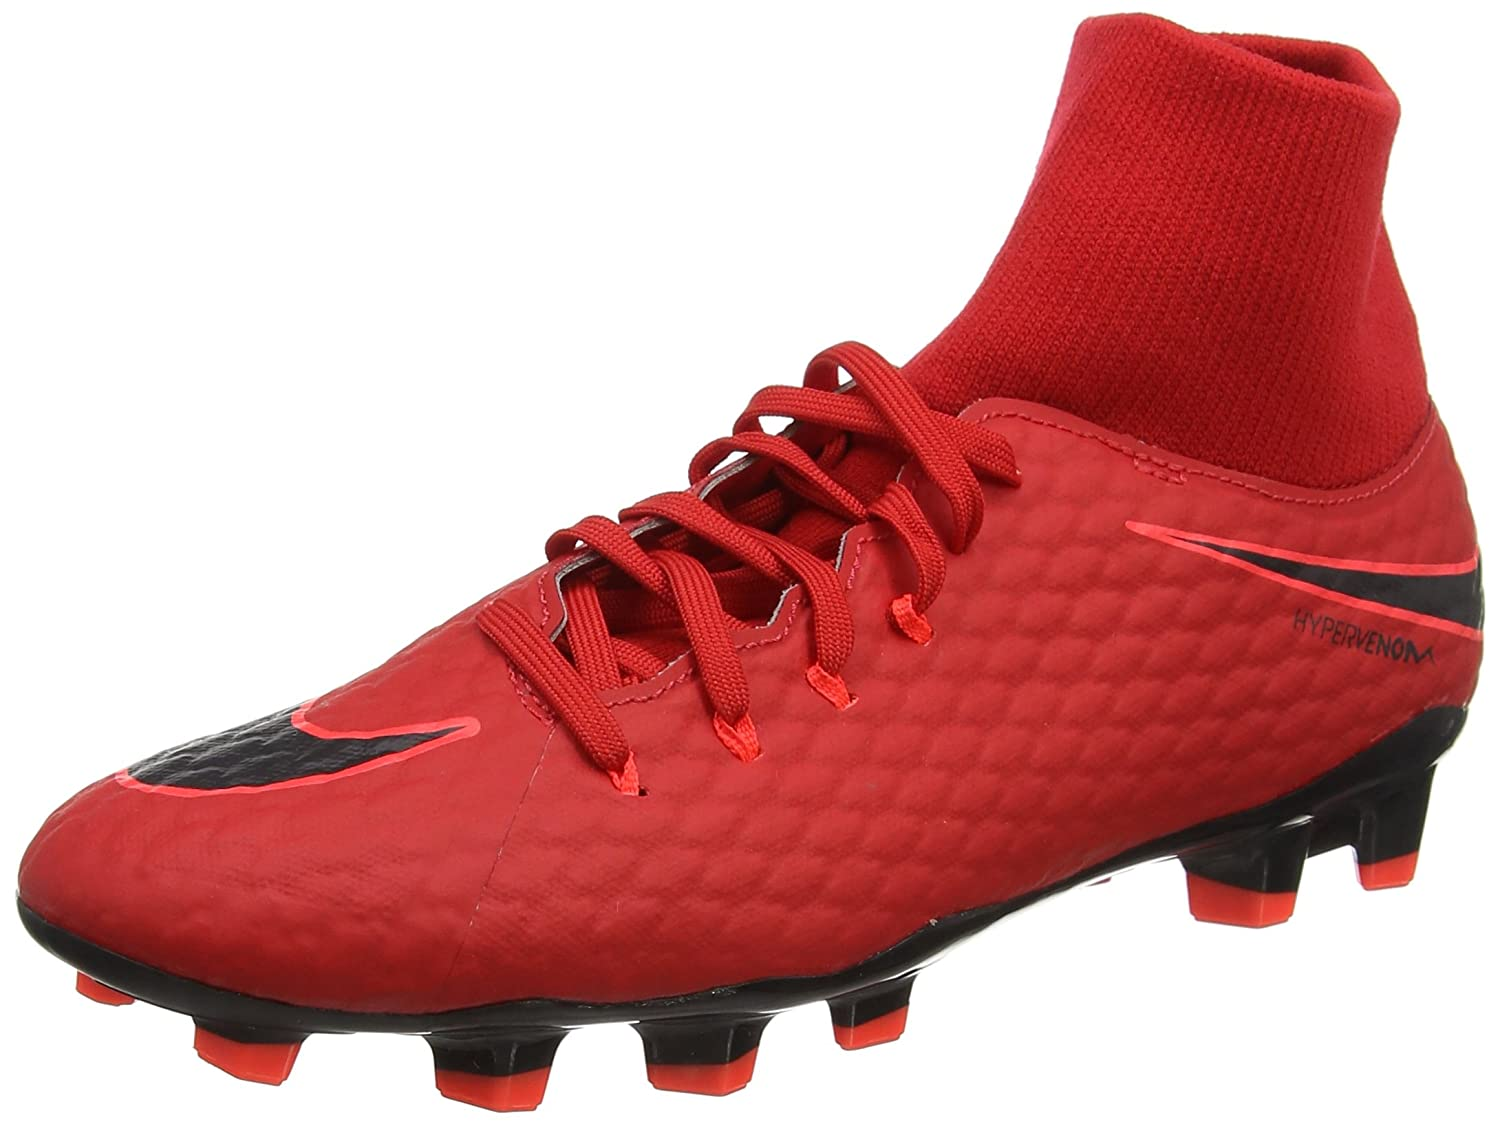 b032c82a7 Nike Men's Hypervenom Phelon 3 Df Fg Football Boots: Amazon.co.uk ...